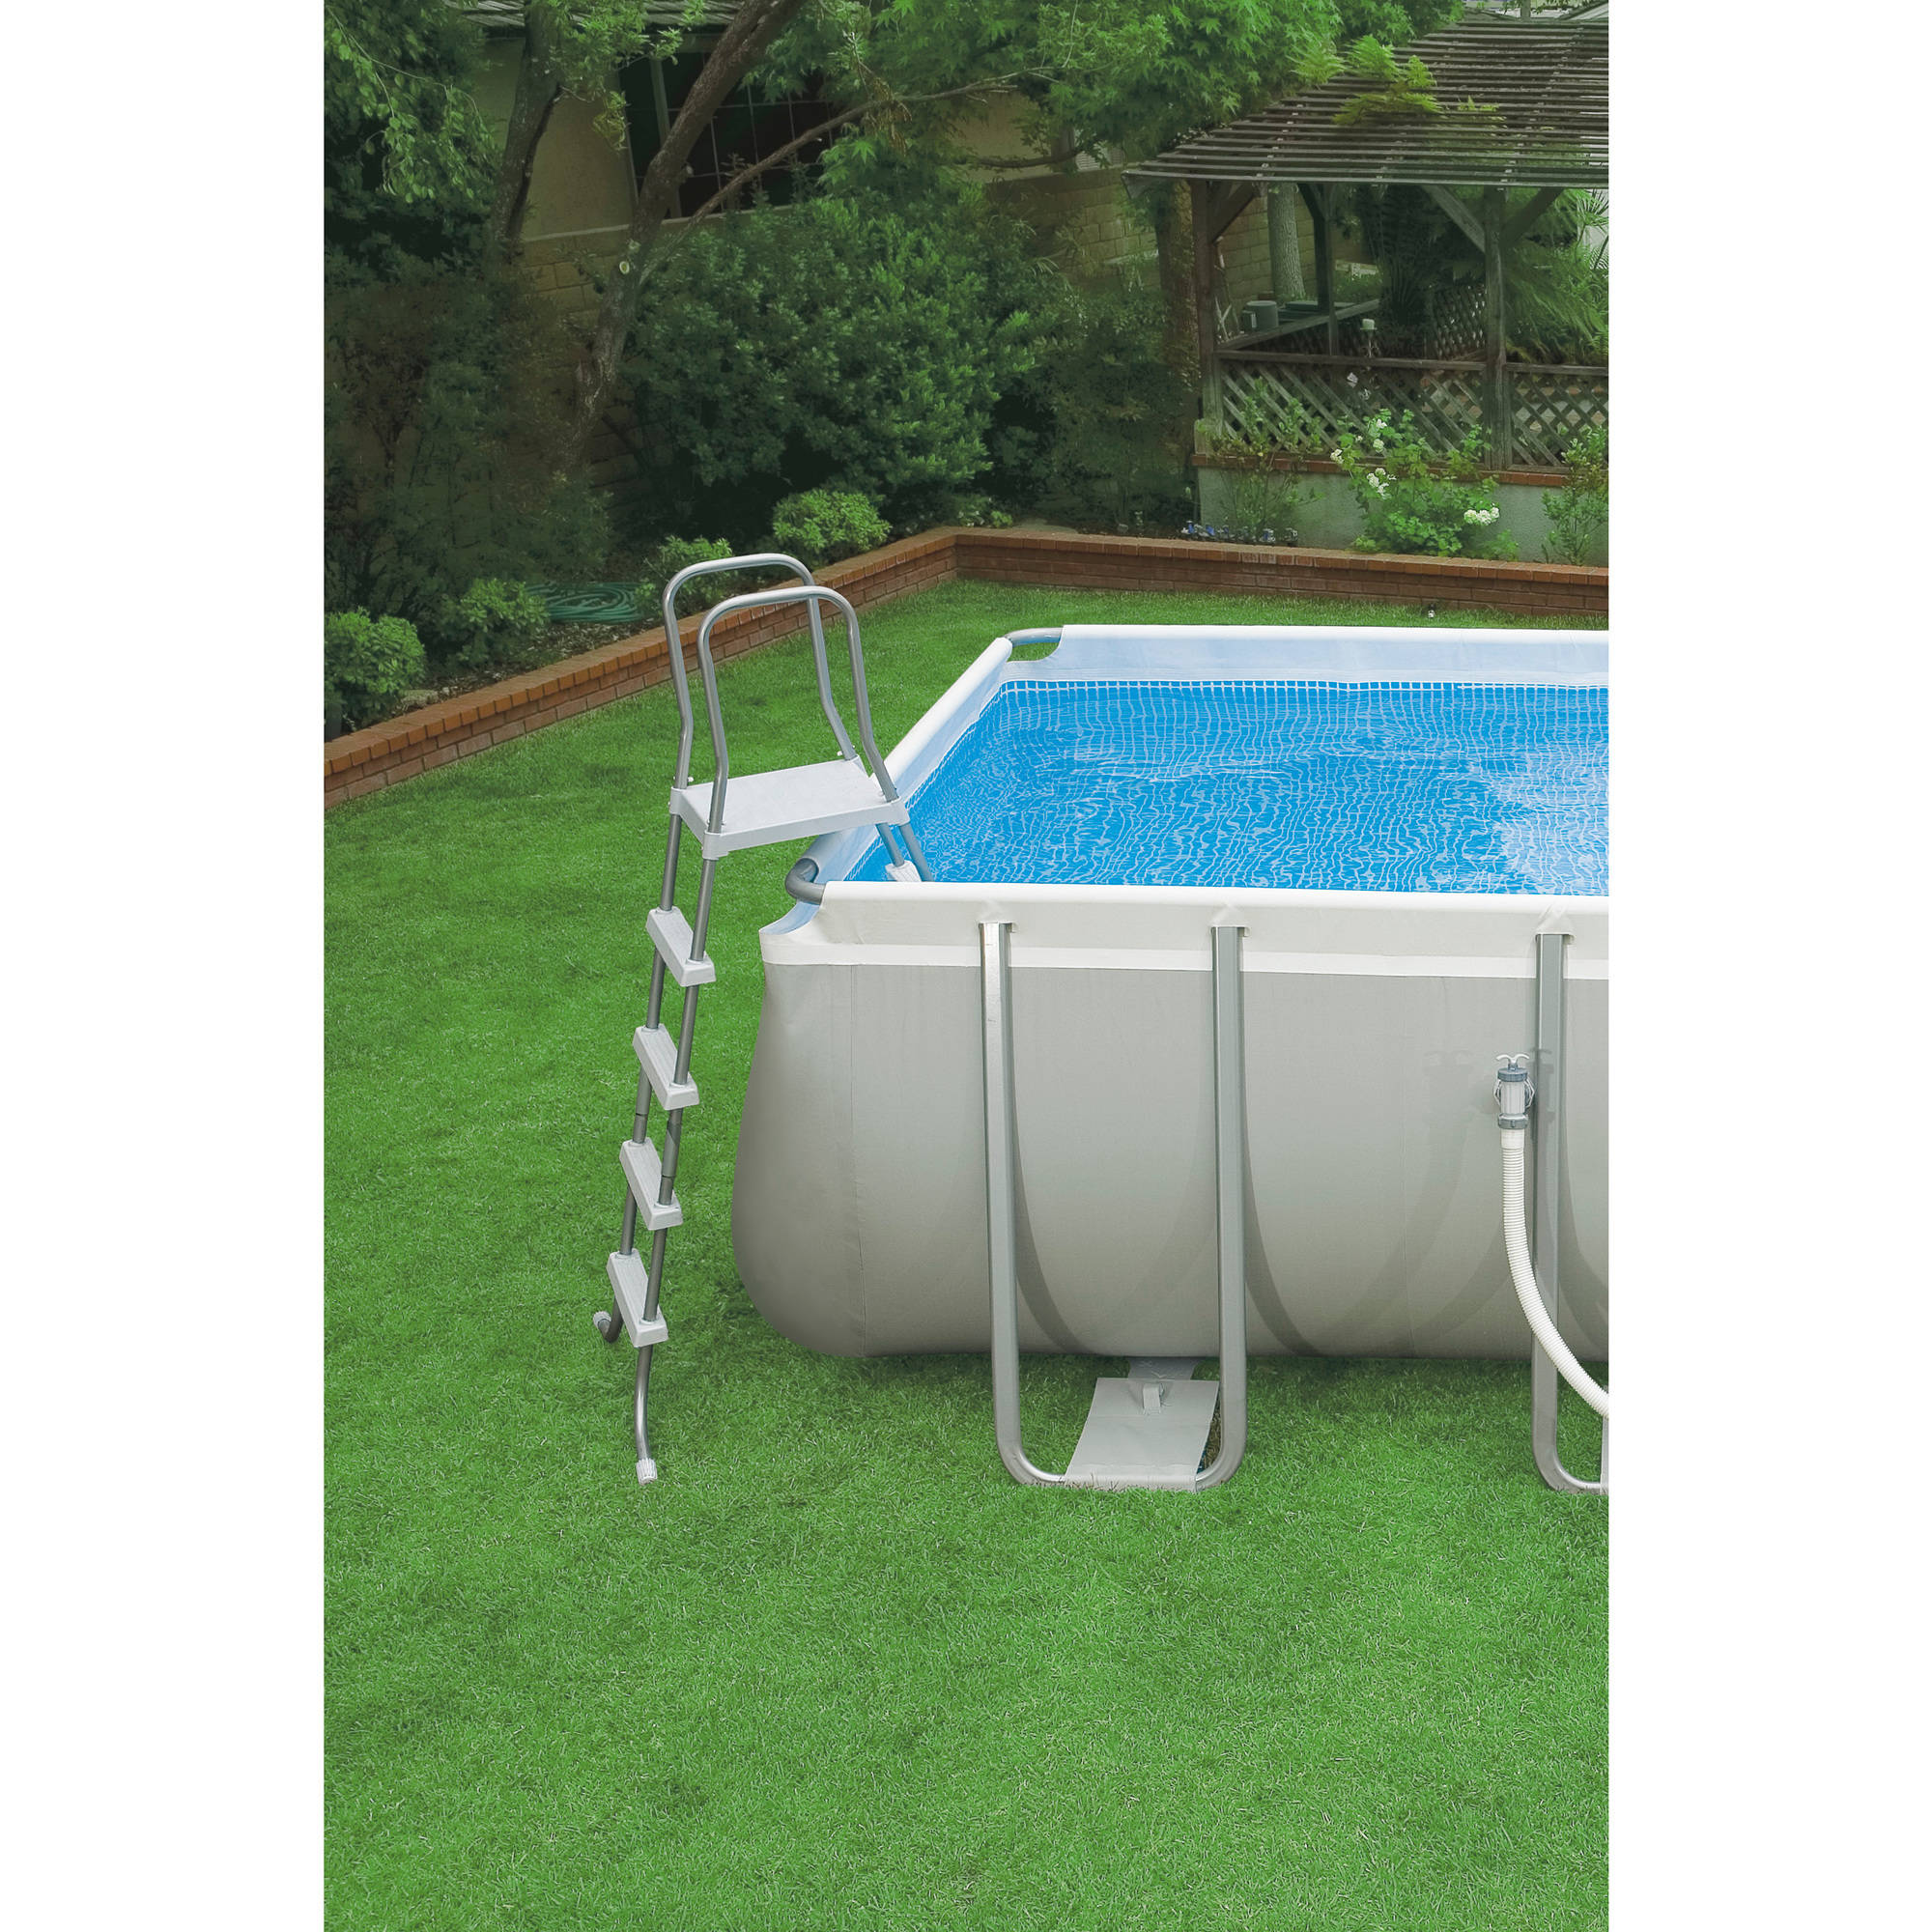 Intex 32 39 x 16 39 x 52 ultra frame rectangular above ground for Square above ground pool